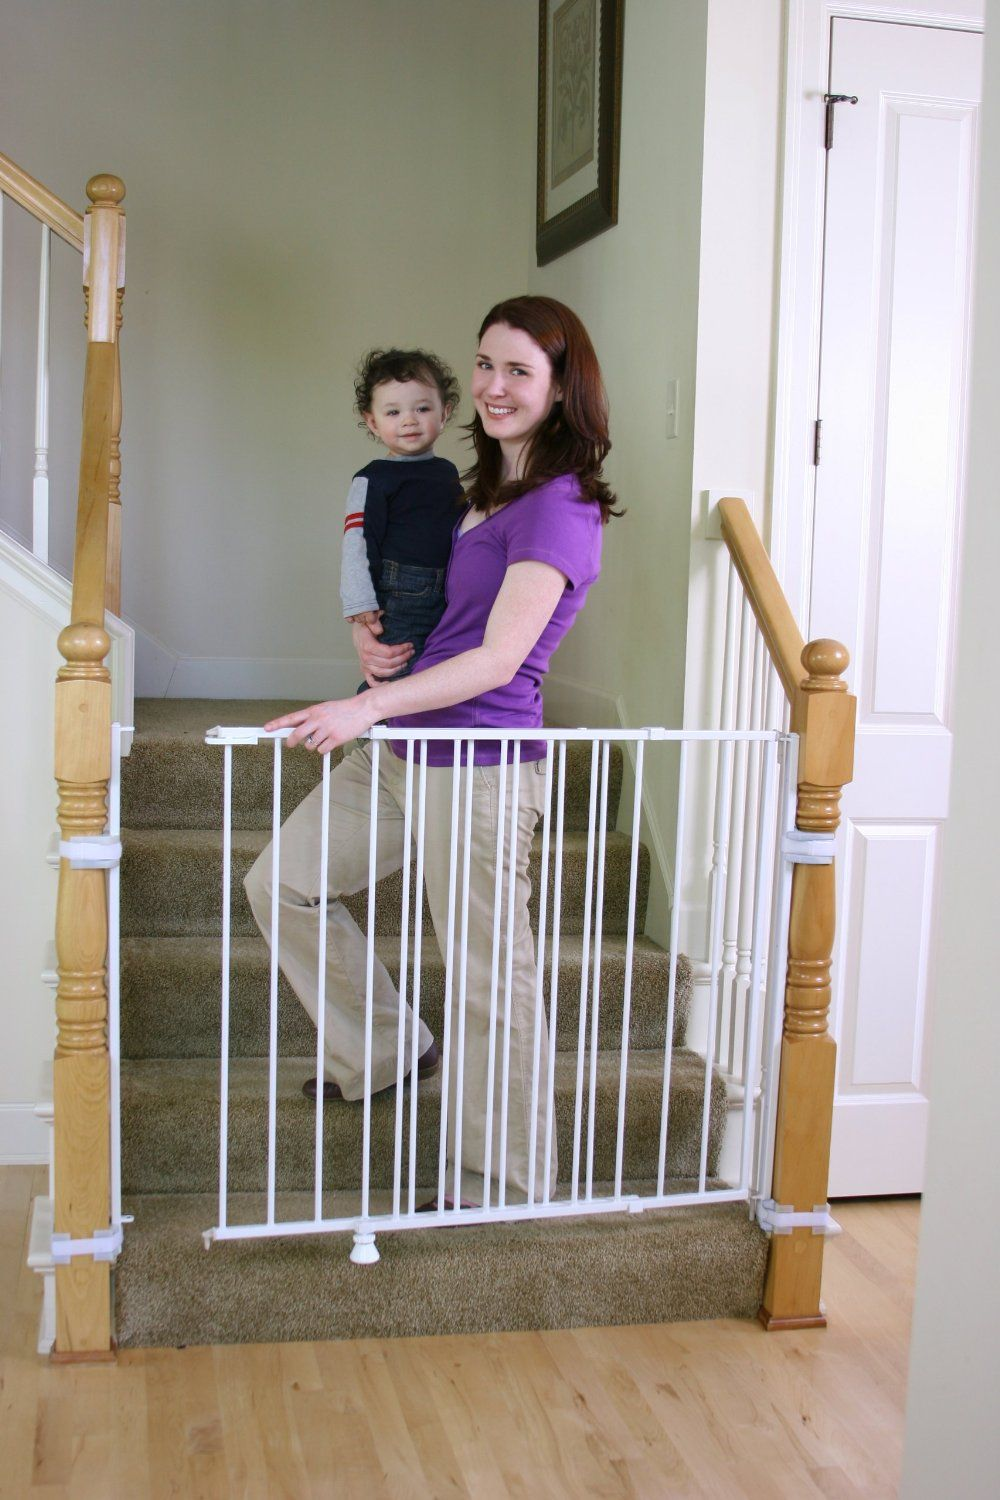 Best Baby Gates For Stairs With Banisters U2013 Guide And Reviews